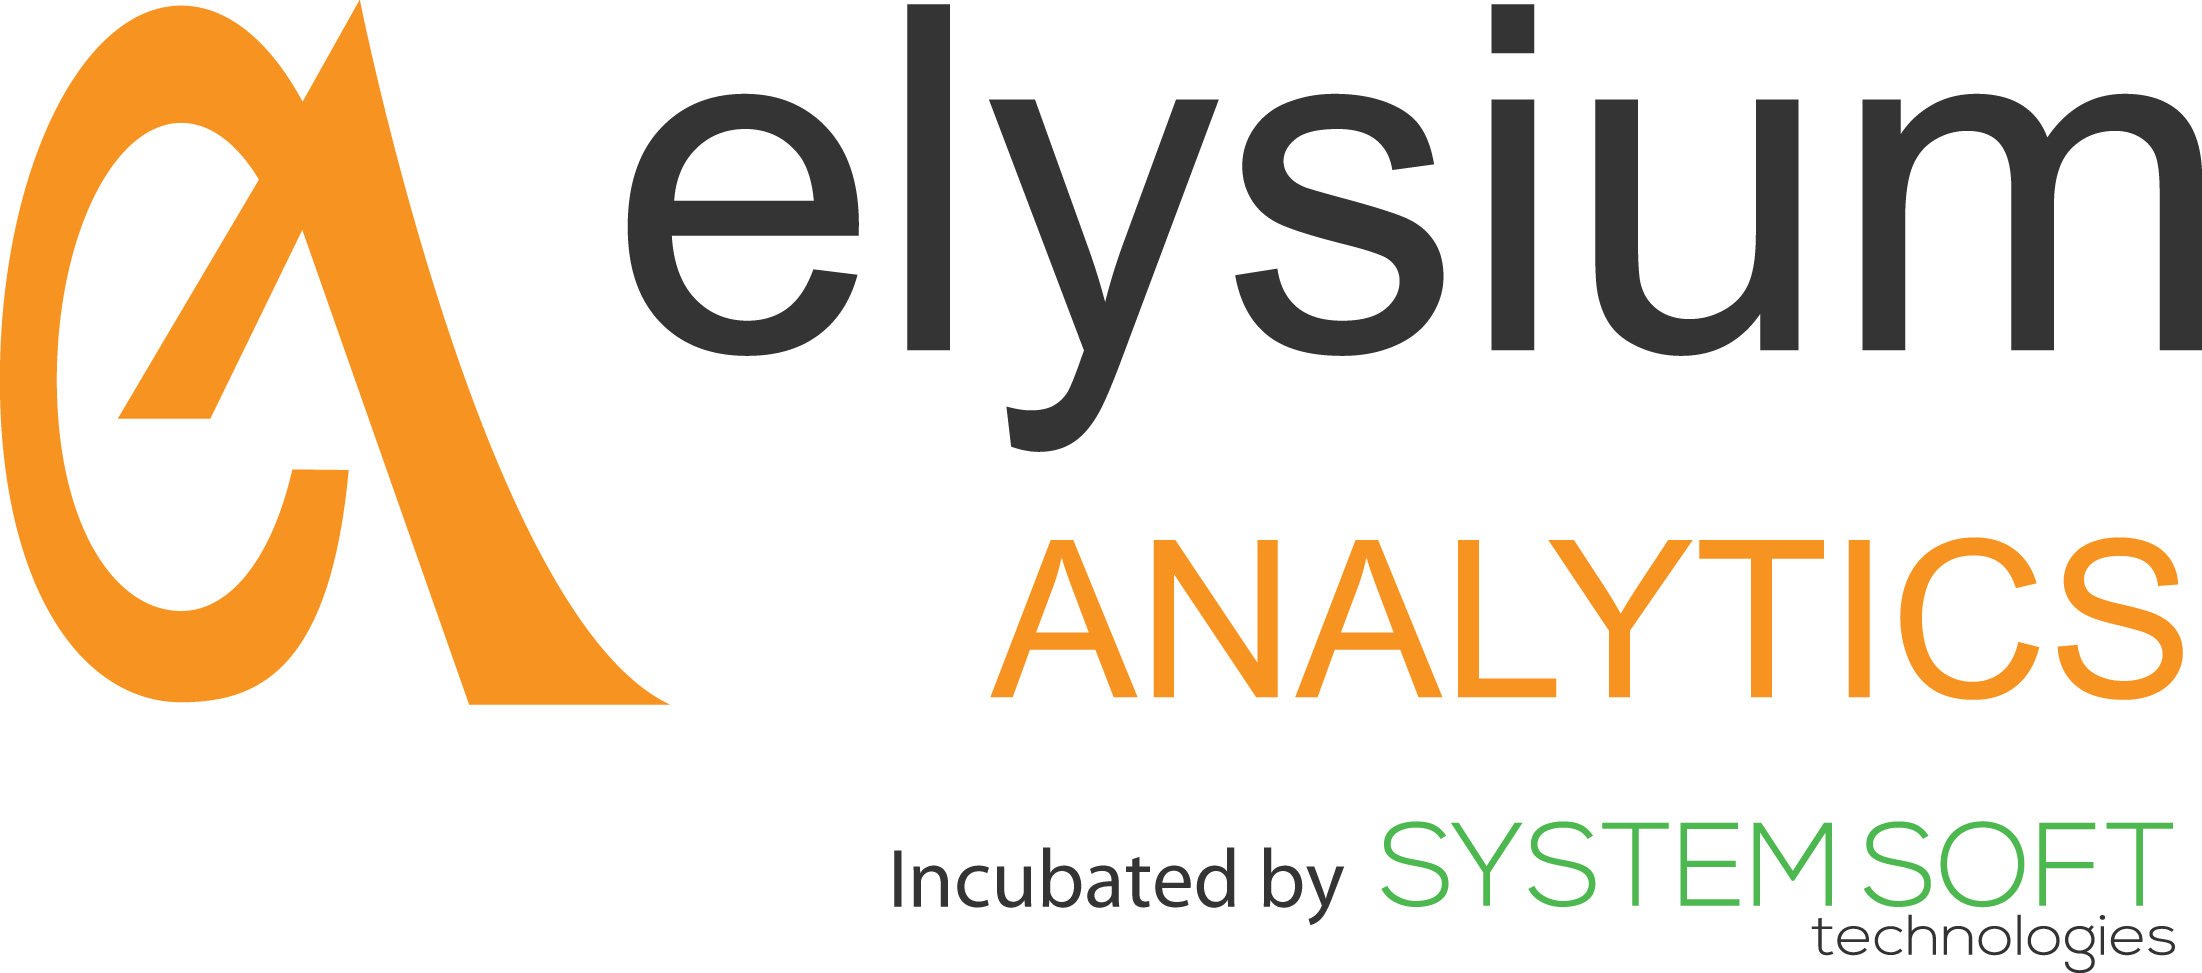 Elysium Analytics incubated by SystemSoft Technologies